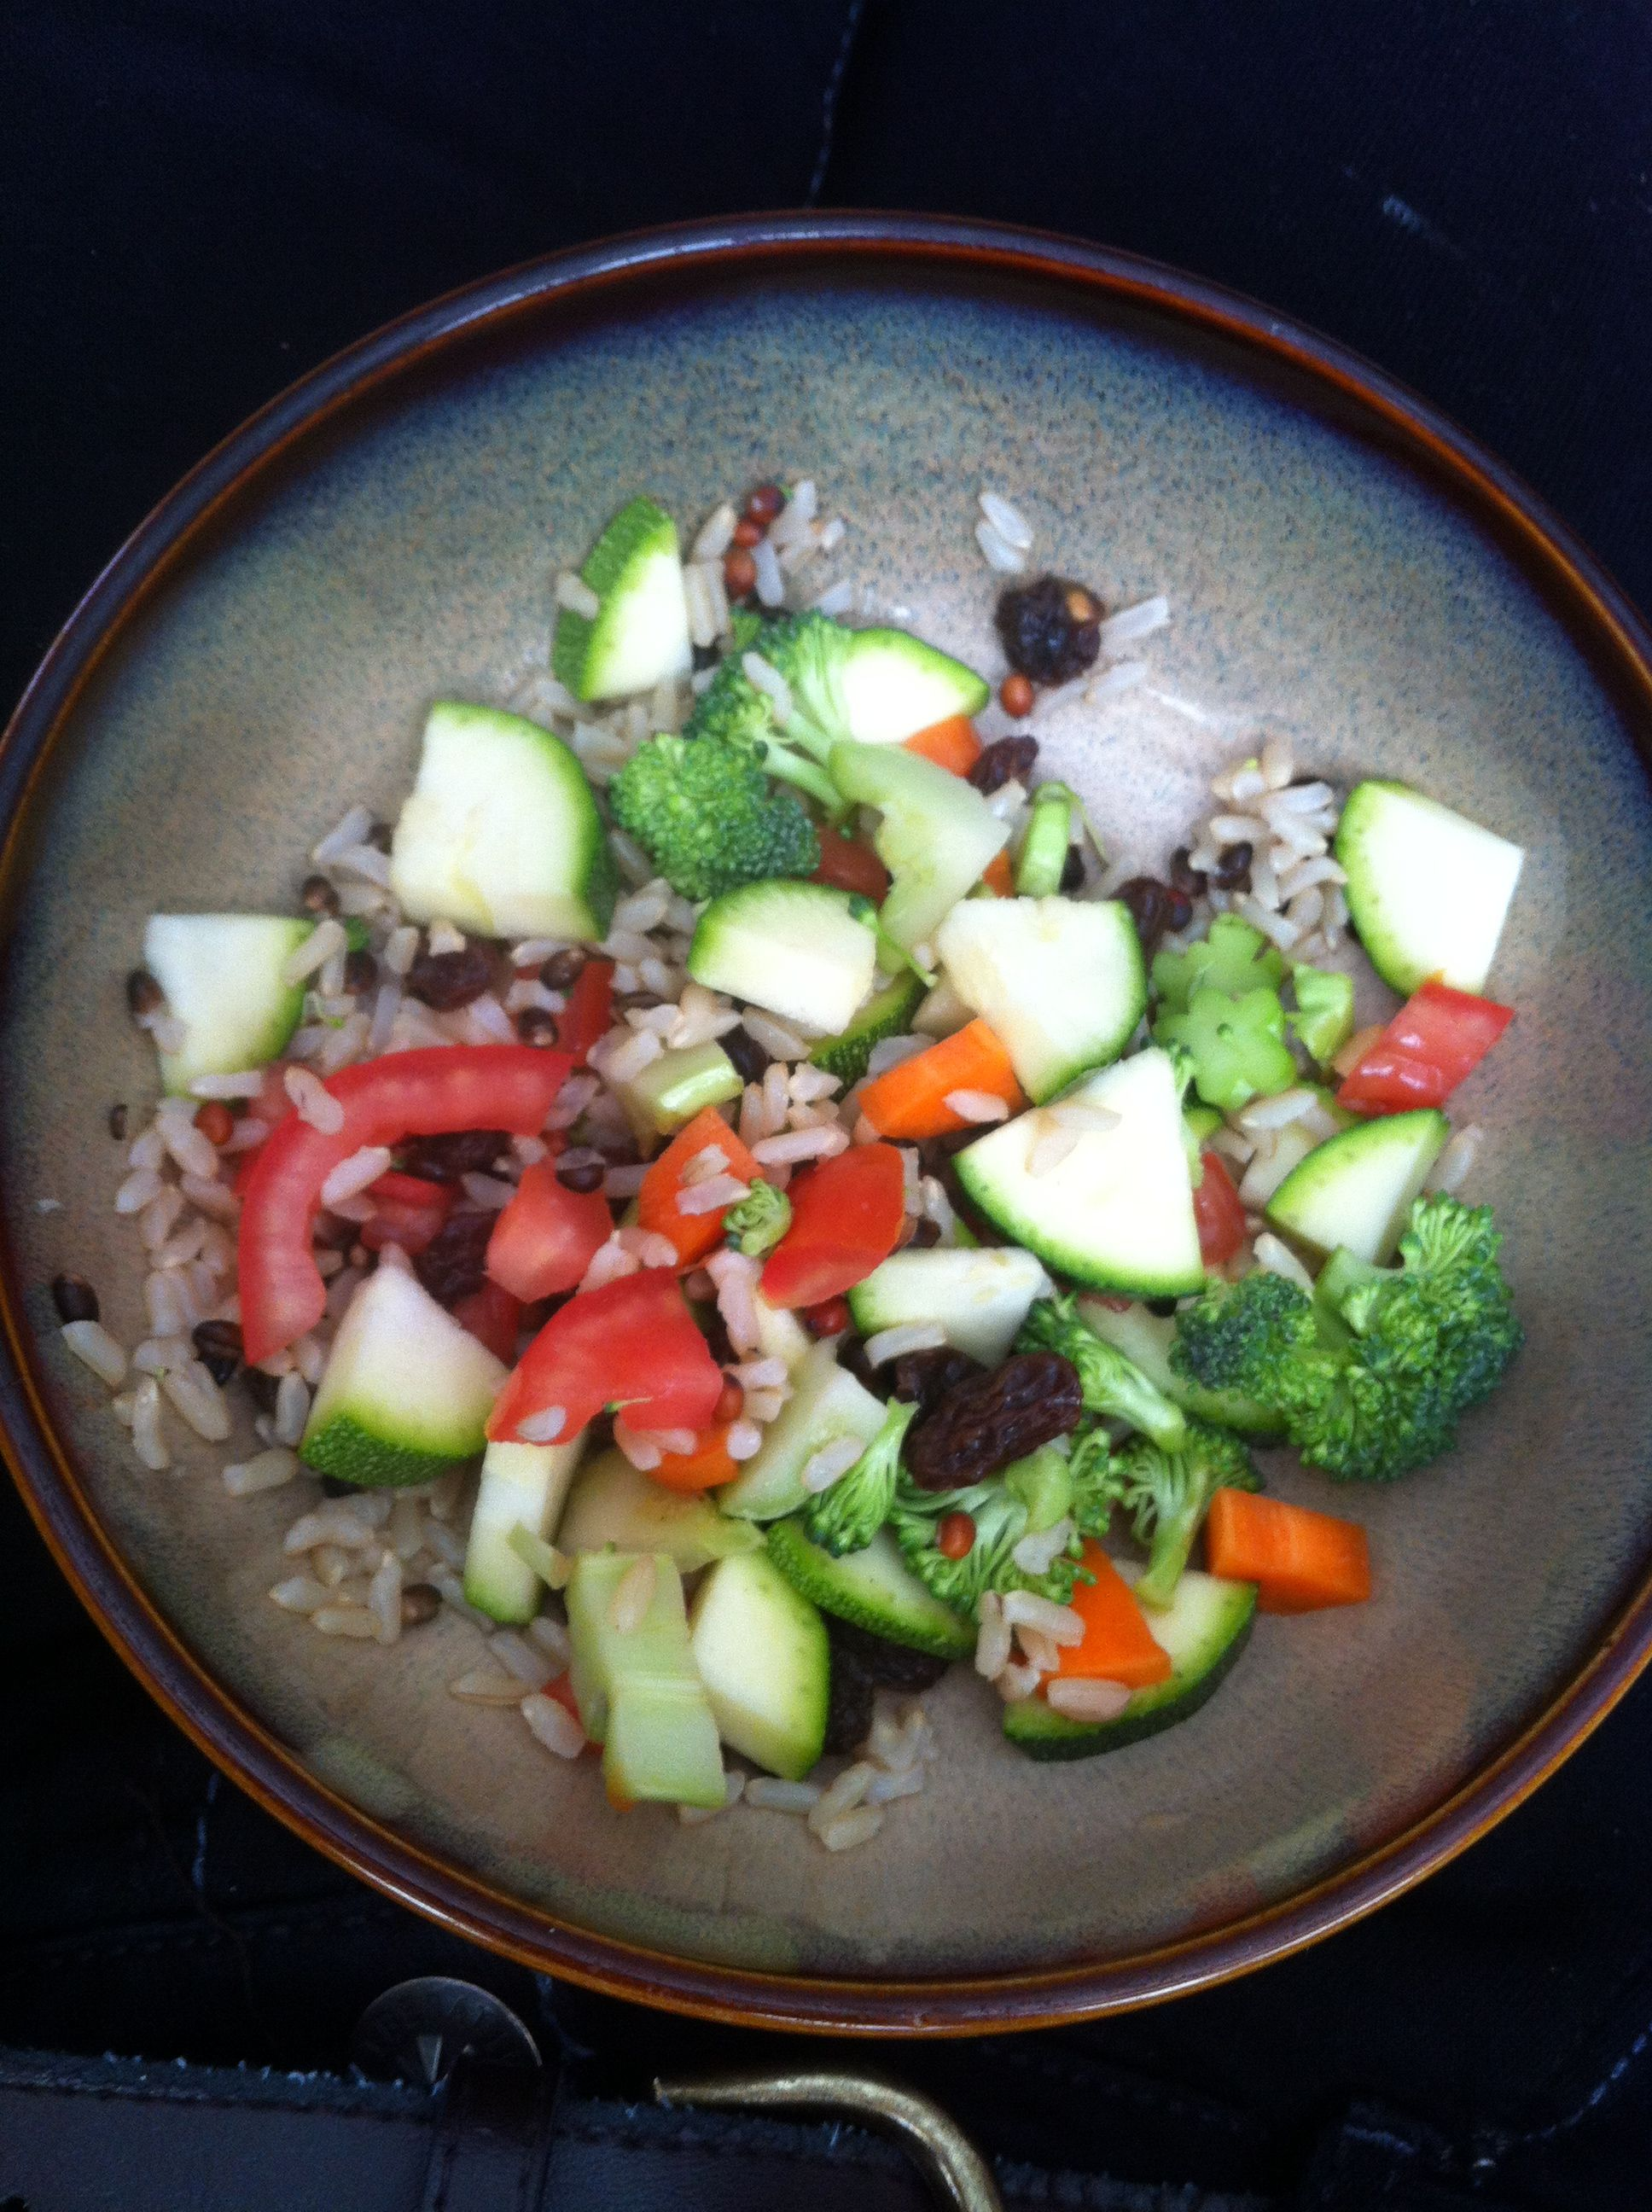 Cut zucchini, tomato, broccoli, carrots, and raisins on a bed of brown organic rice...yummmmy linner for me lol